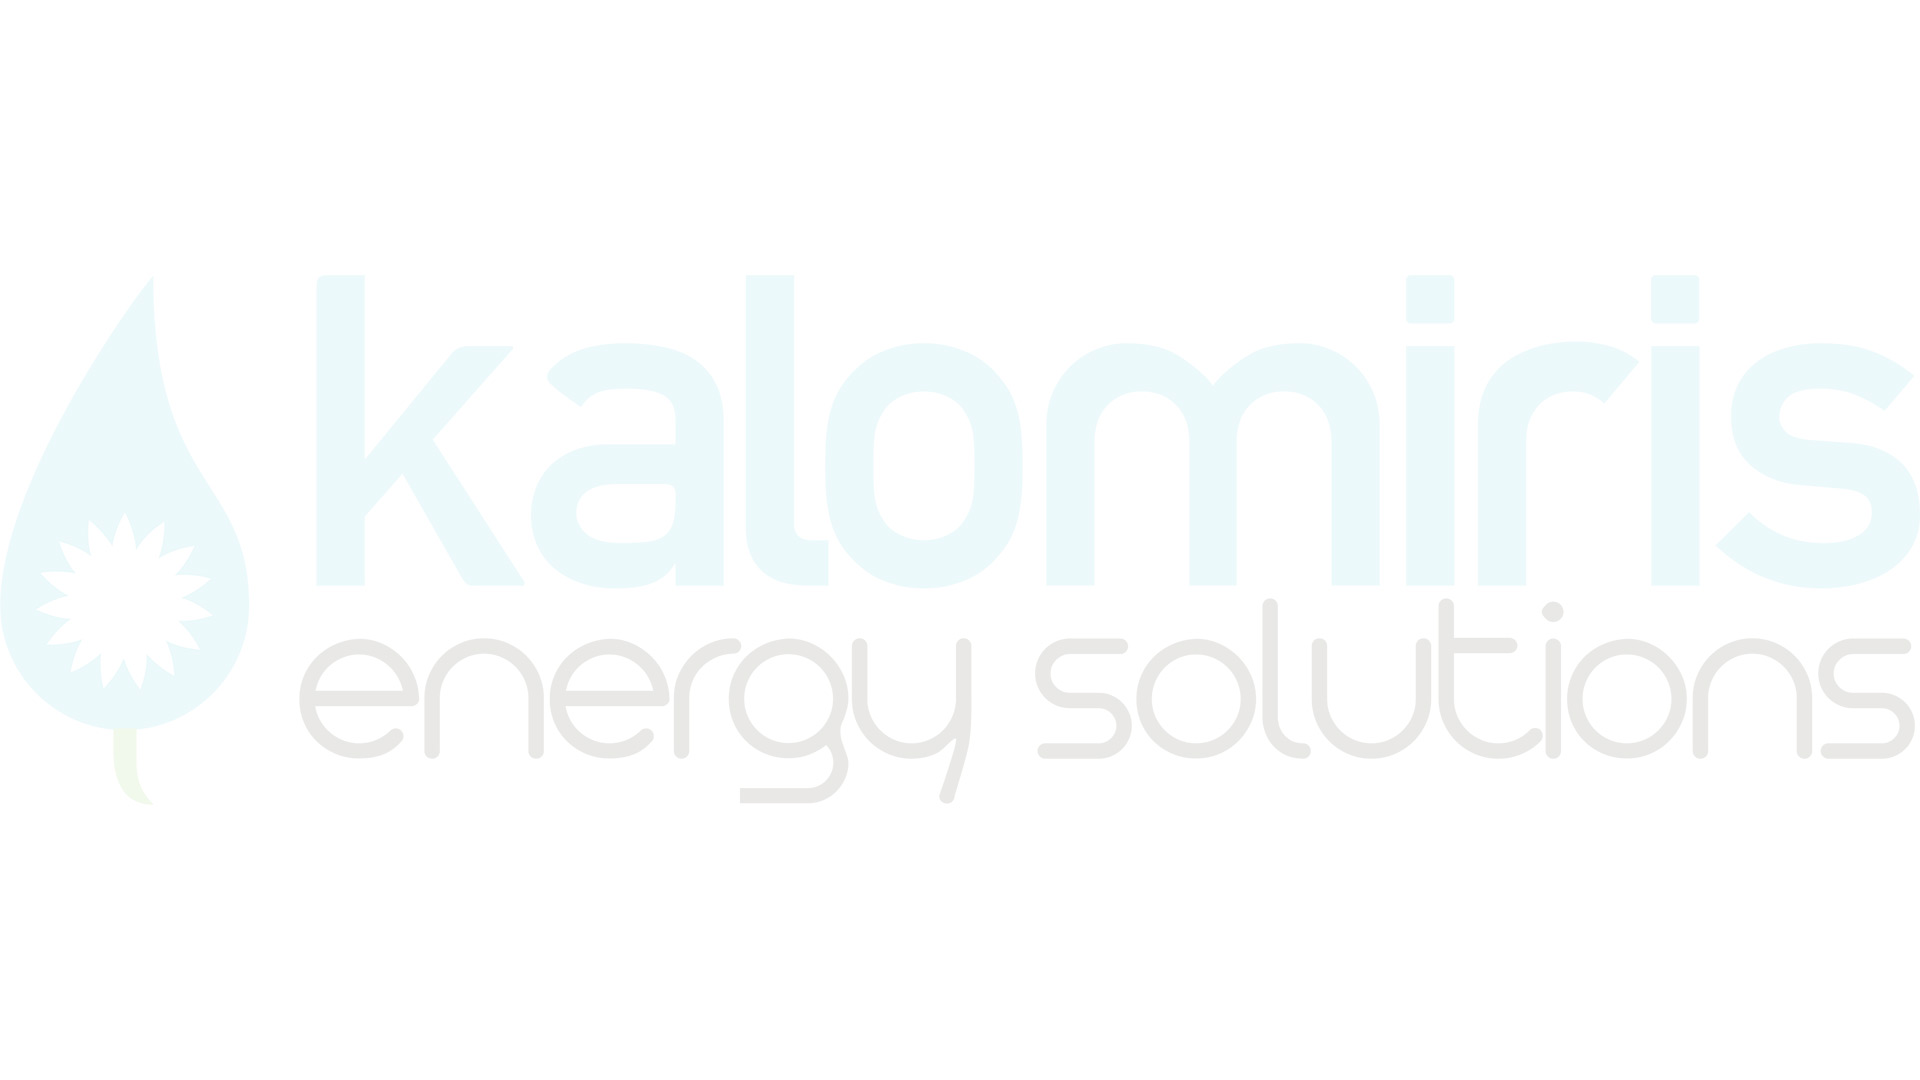 Ceiling Fan CASAFAN ECO NEO II 103 MA Teak / Black with Light KIT 40.5 (103cm)